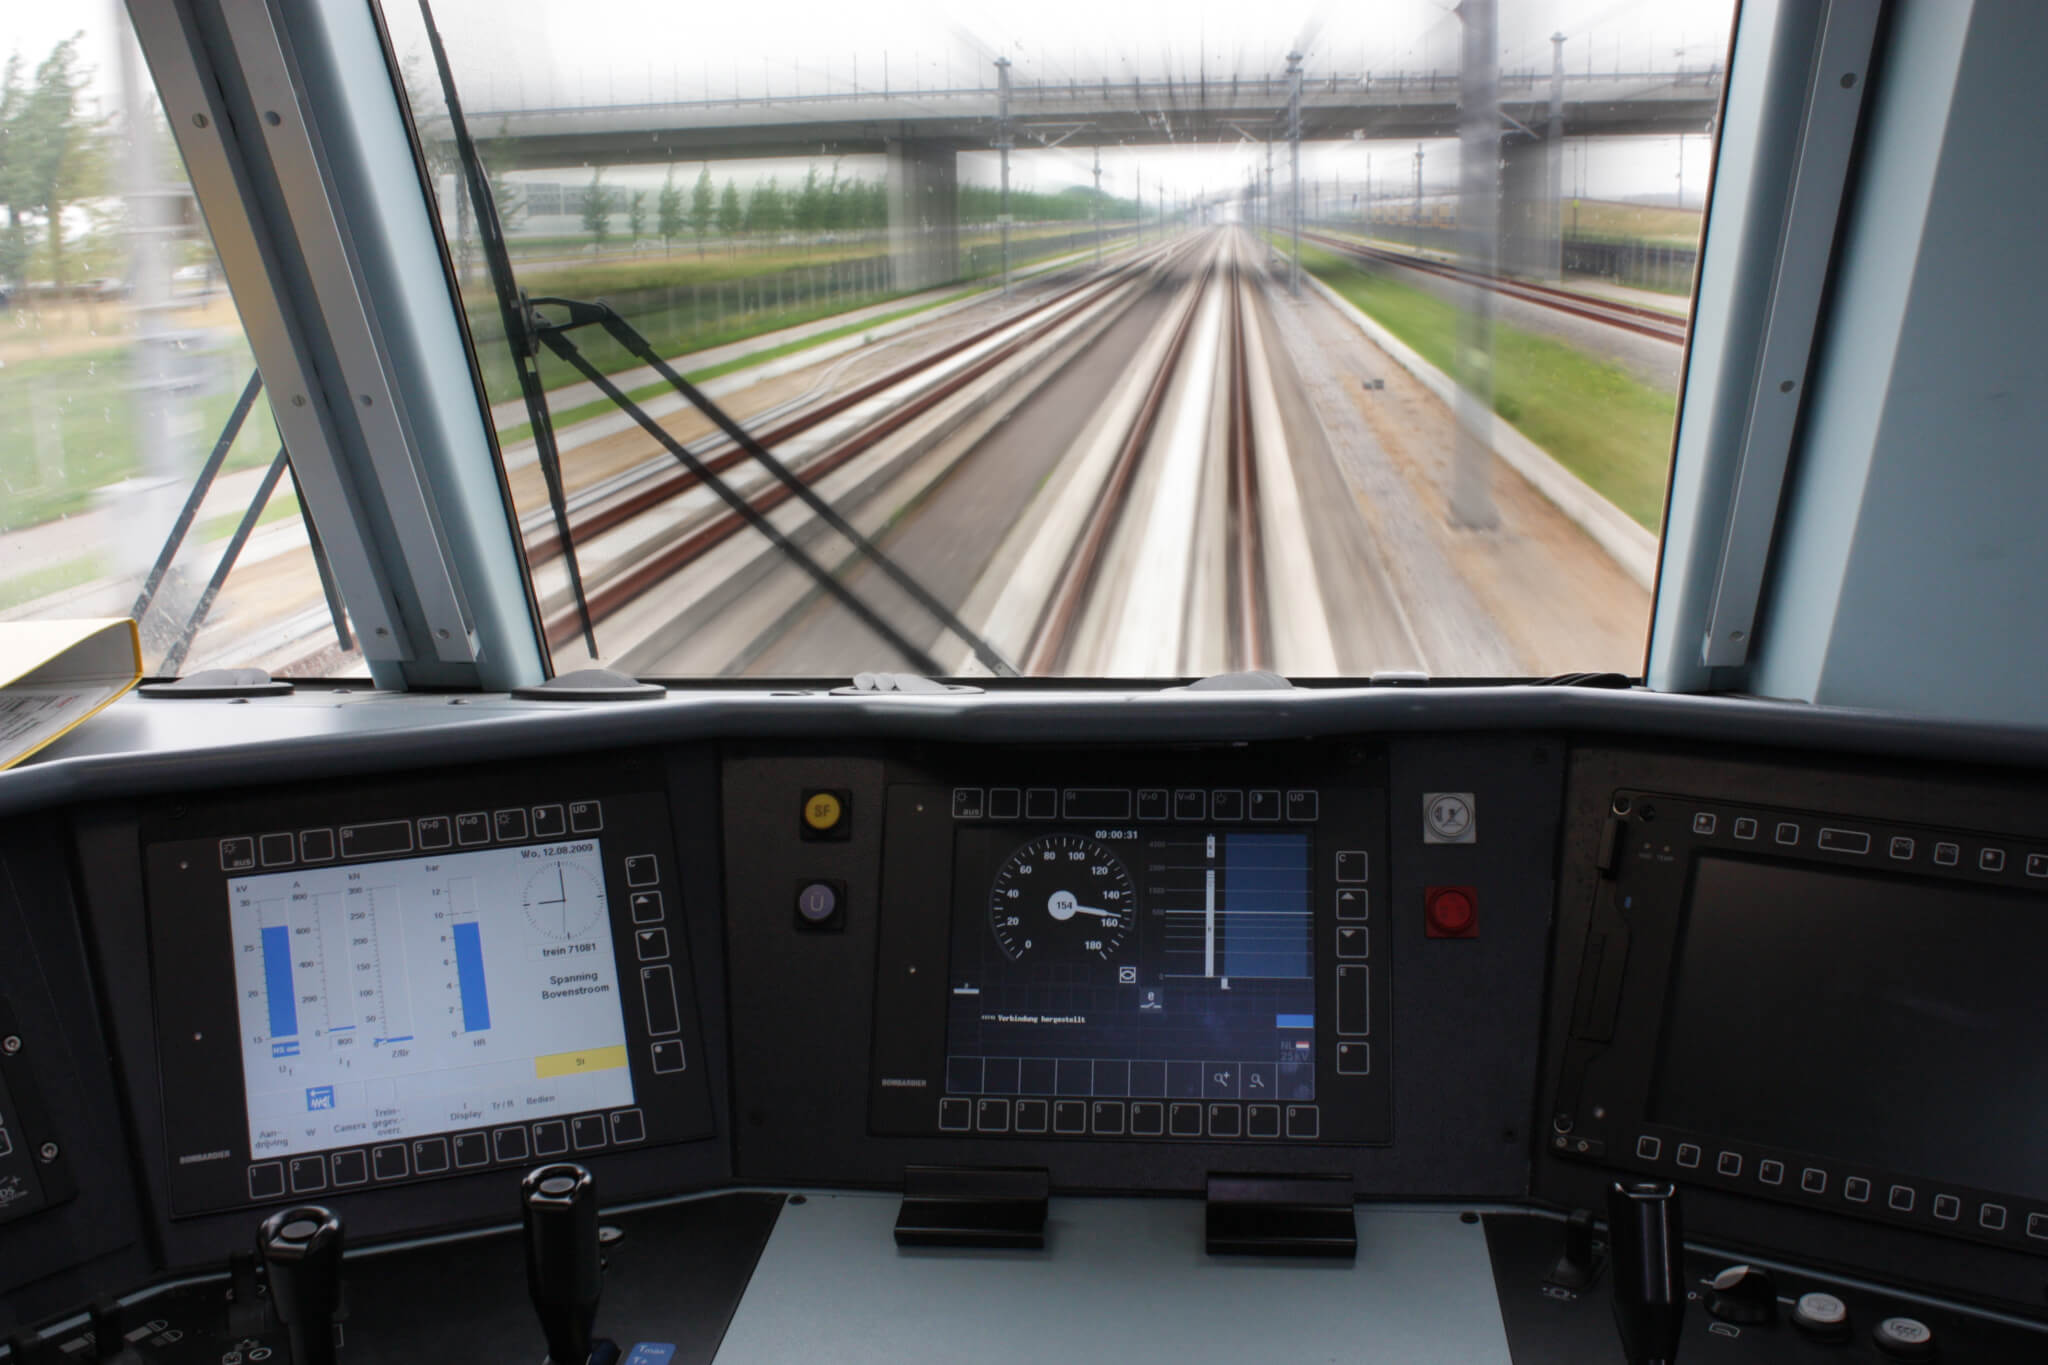 On-board train control technology